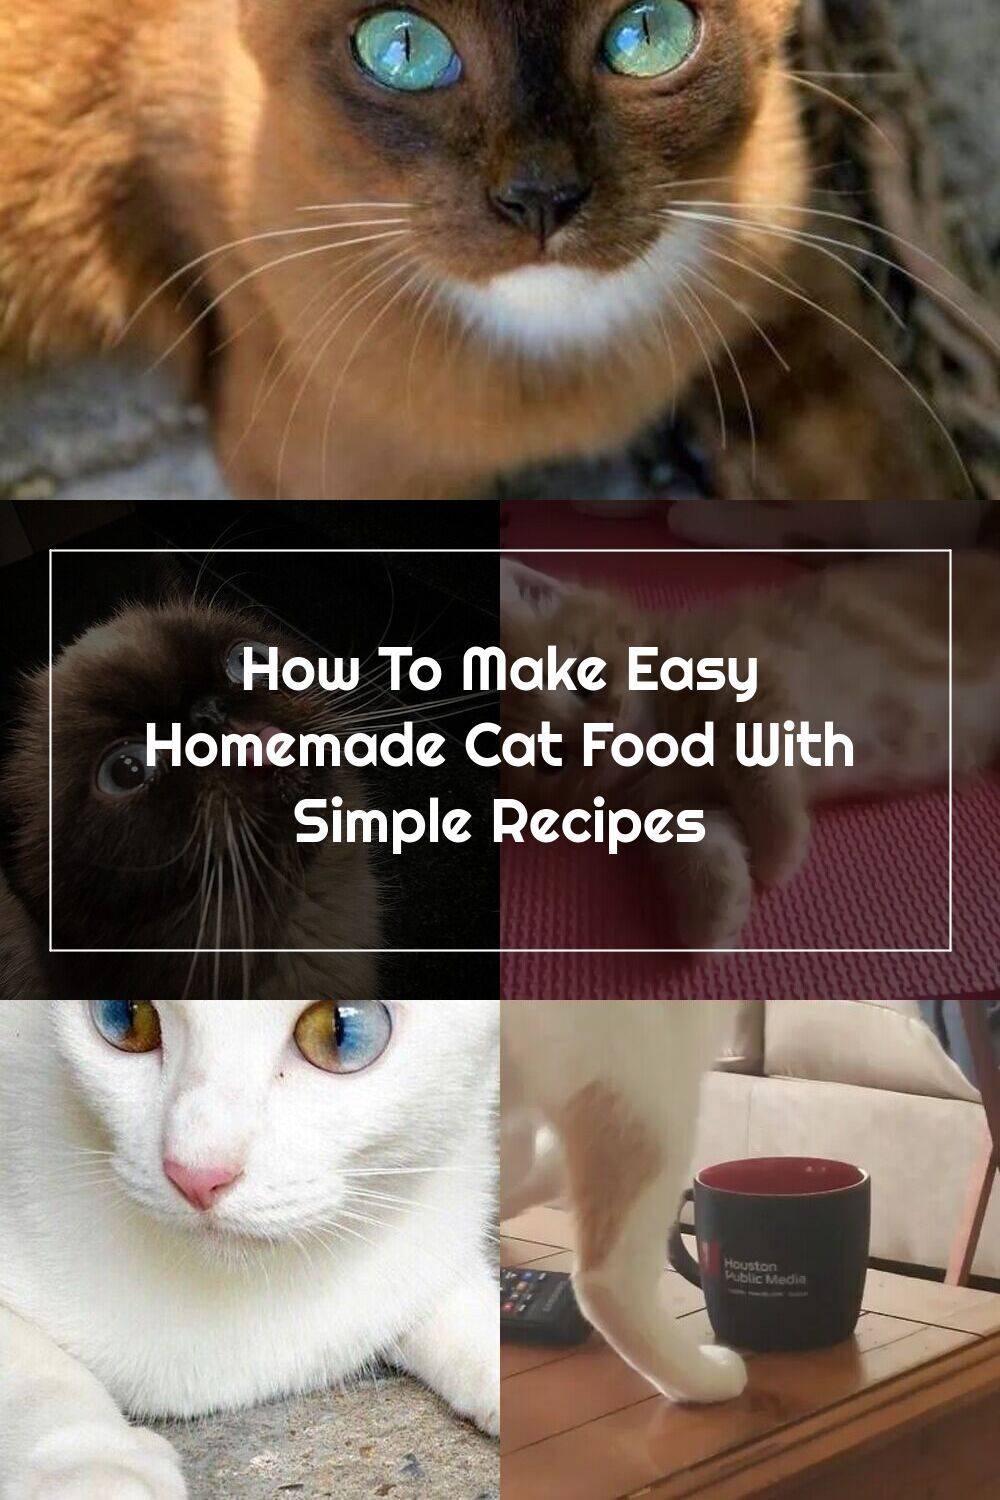 How To Make Easy Homemade Cat Food With Simple Recipes In 2020 Homemade Cat Food Homemade Cat Easy Homemade